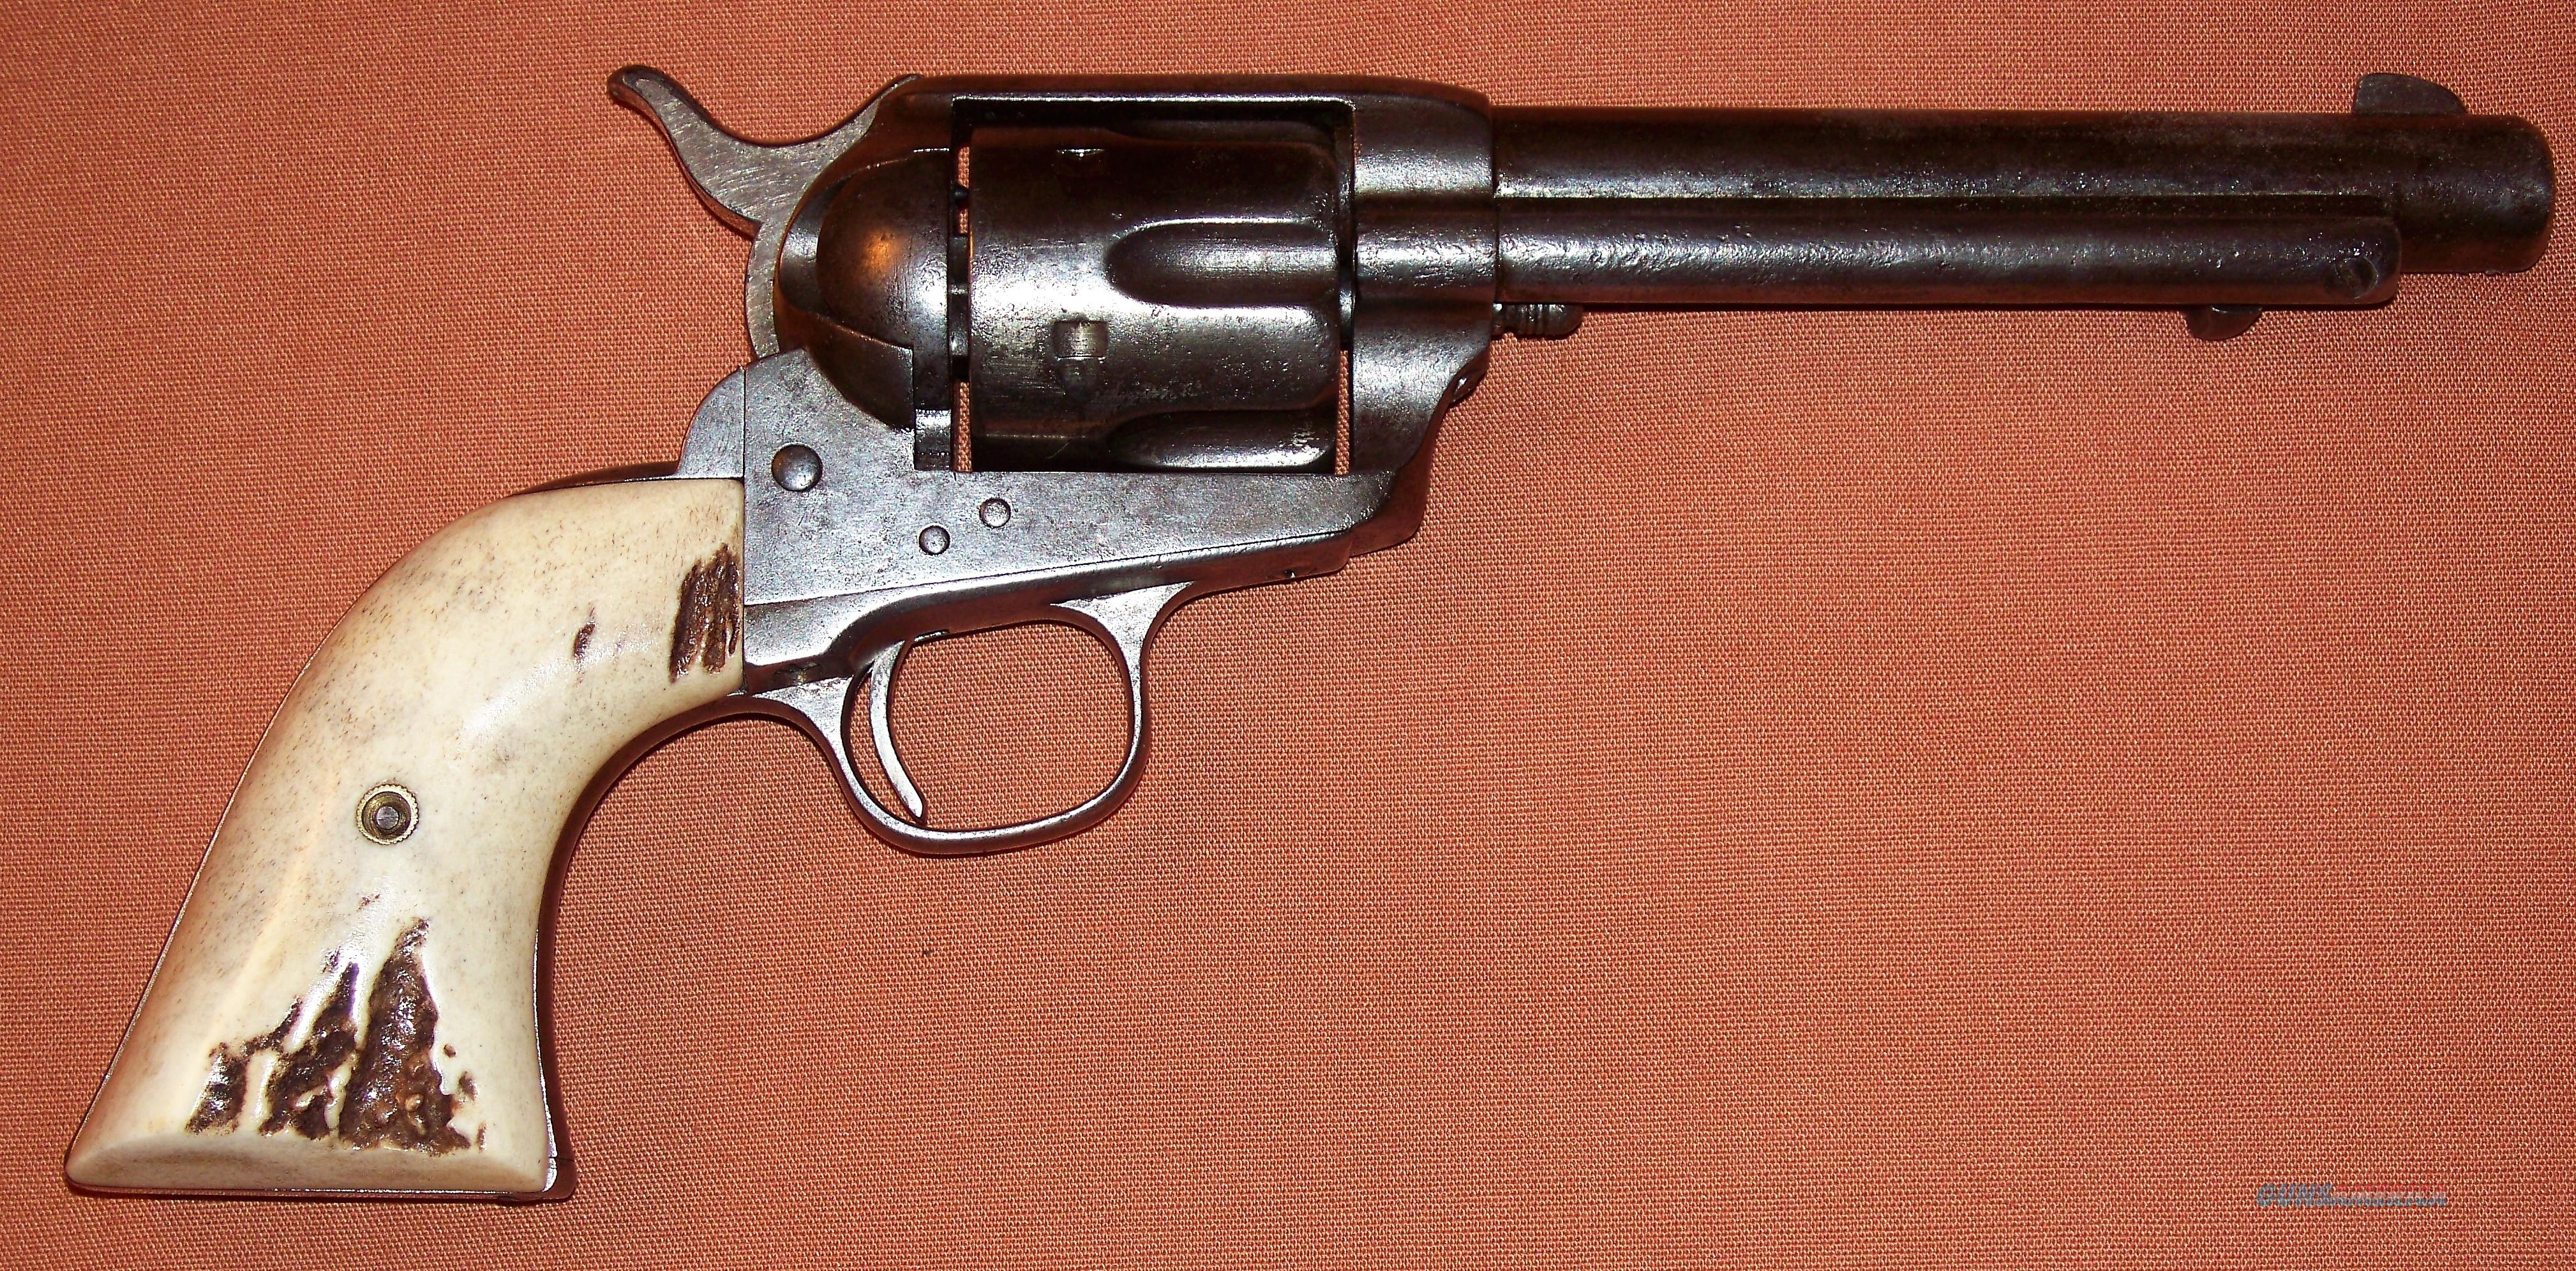 """Colt 1st Generation SAA Single Action Army Revolver 45 Cal. Nickel 5.5"""" Barrel, Texas Shipped, c. 1883 ANTIQUE  Guns > Pistols > Colt Single Action Revolvers - 1st Gen."""